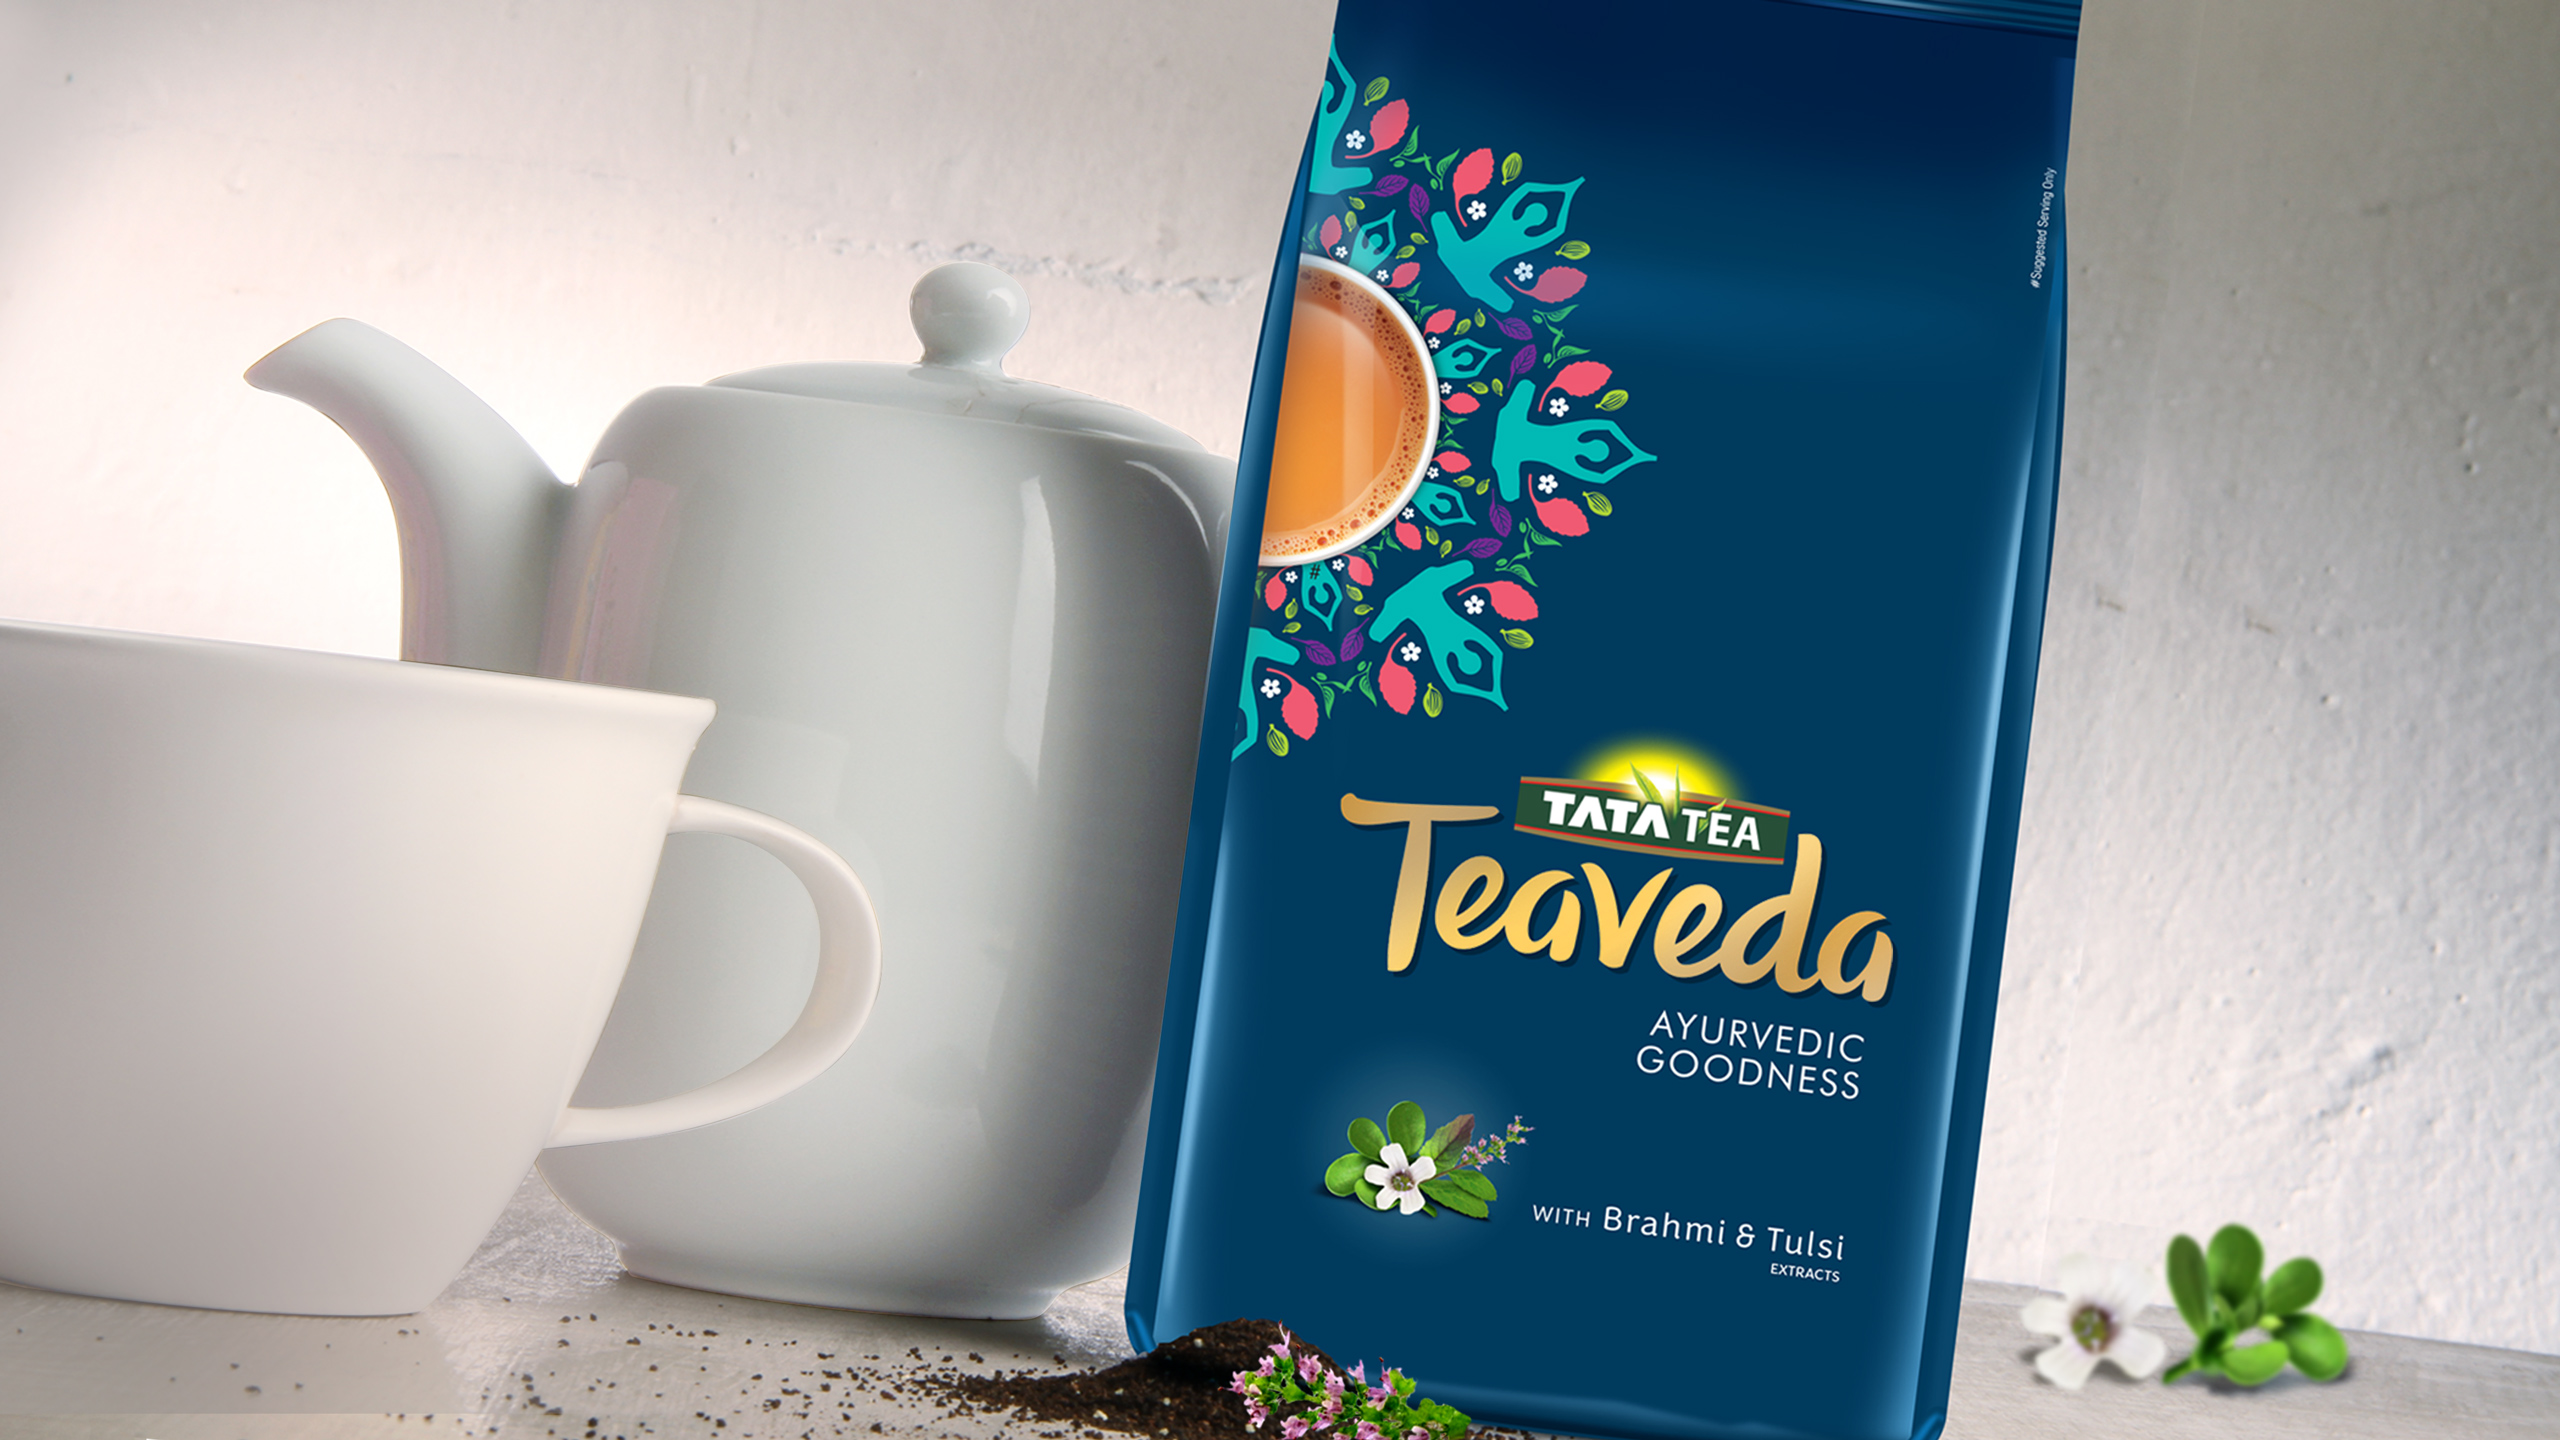 TATA Teaveda with Brahmi and Tulsi product branding and packaging design